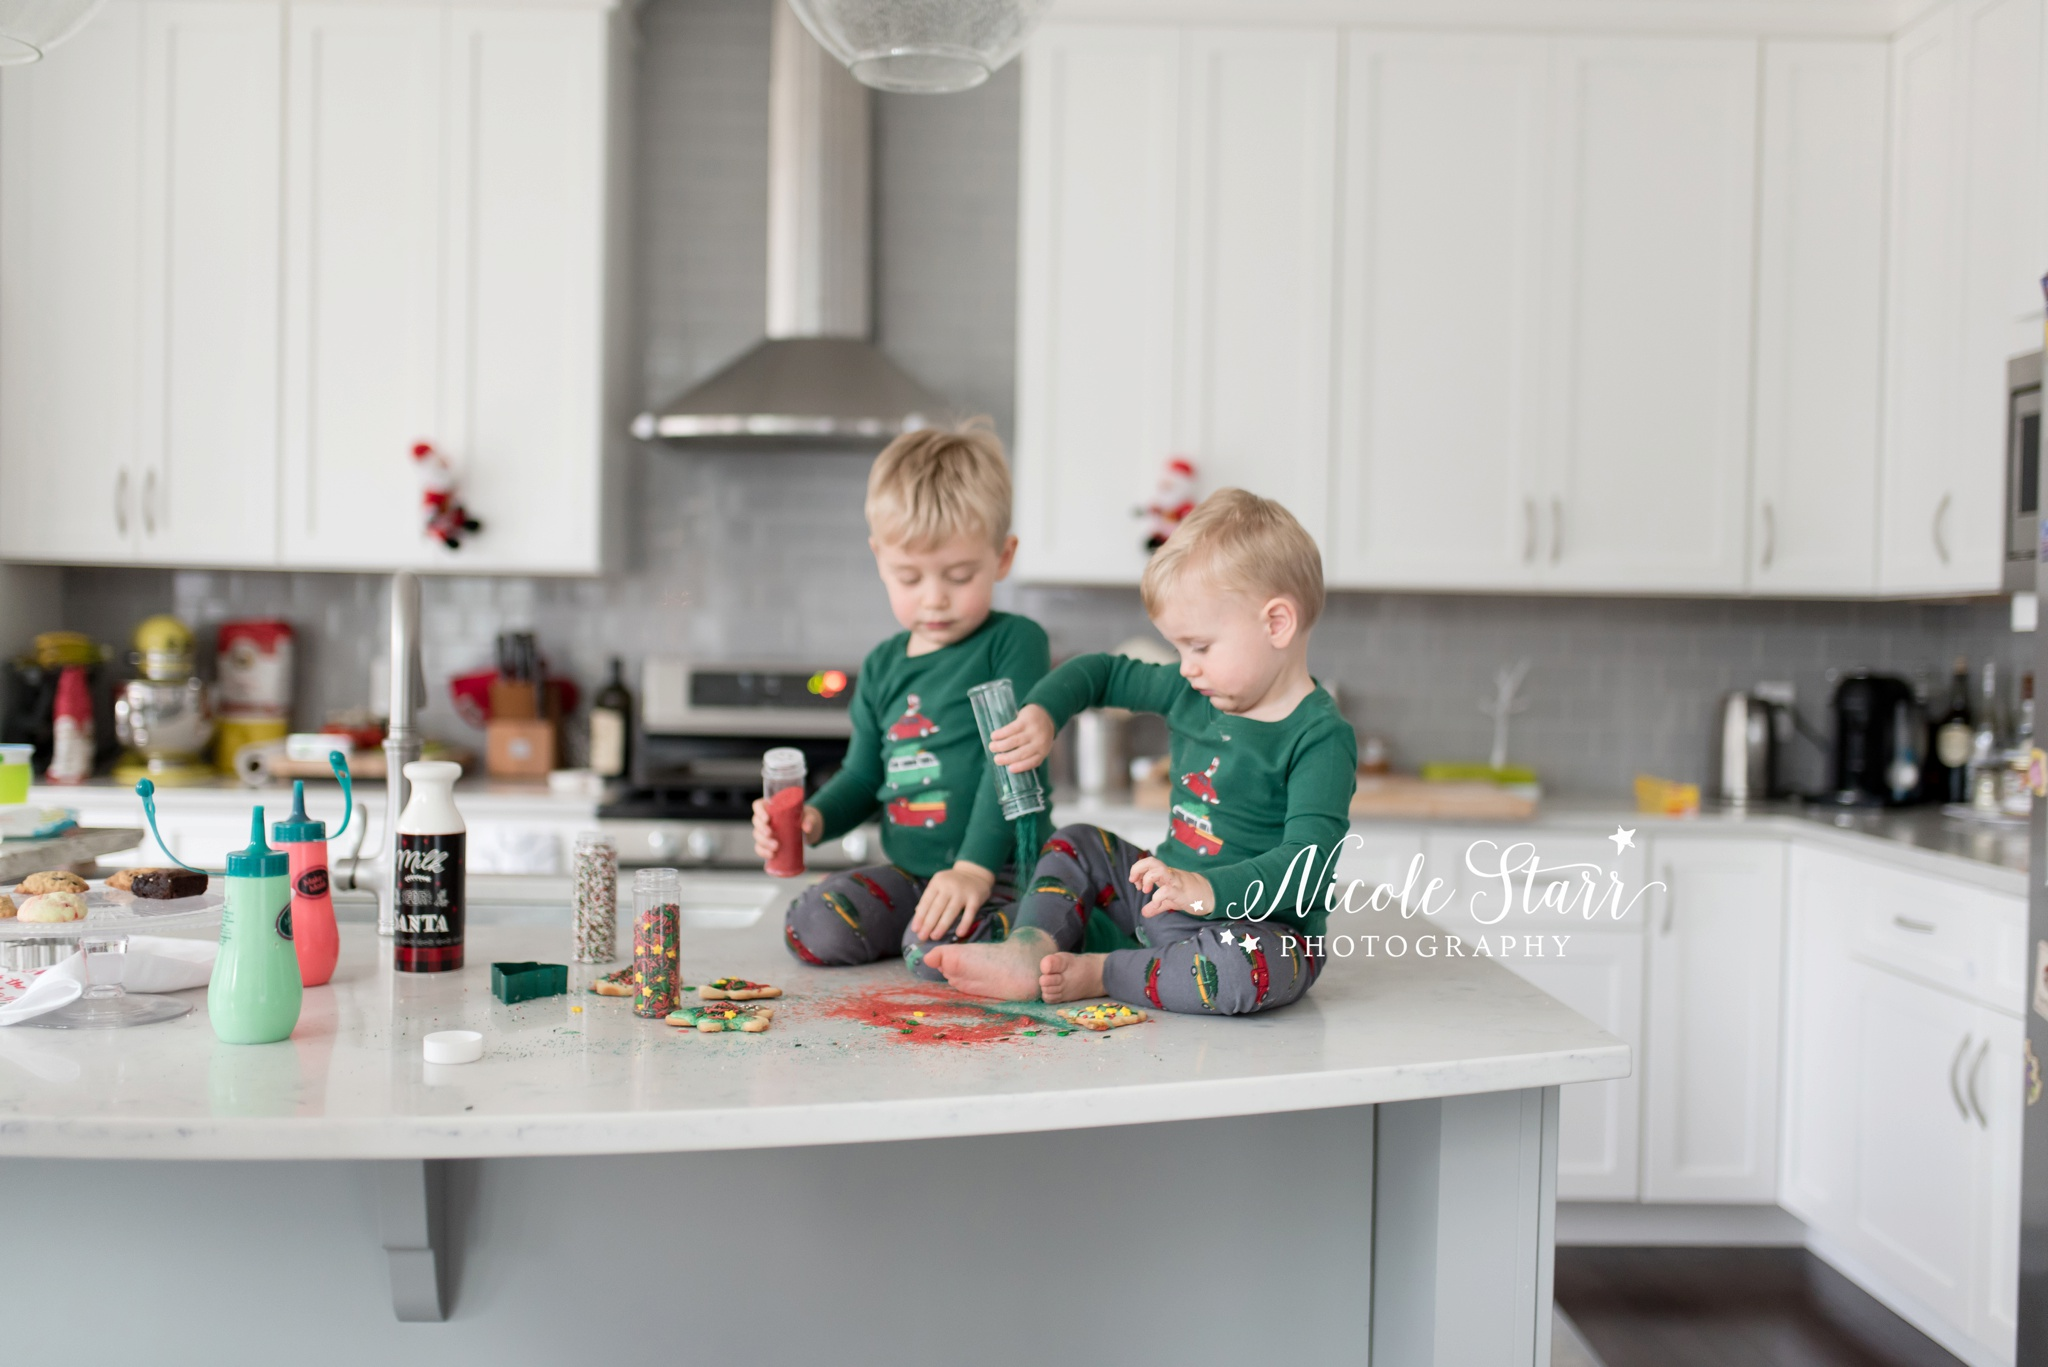 nicole starr photography, saratoga springs lifestyle photographer, holiday cookie baking photoshoot_0009.jpg